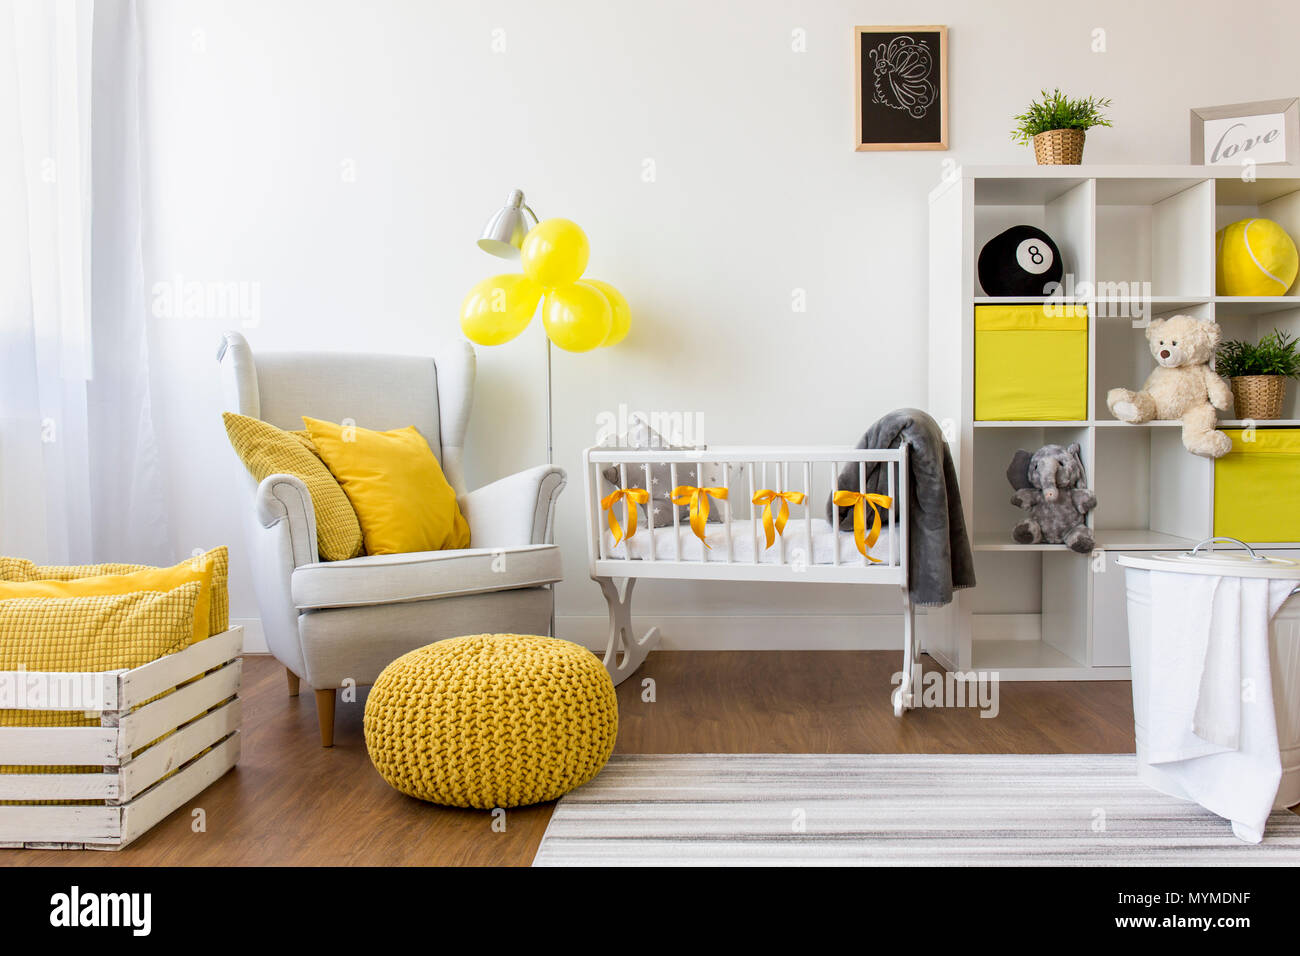 Babies Room Accessories Shot Of A Modern Cozy Baby Room With Yellow Accessories Stock